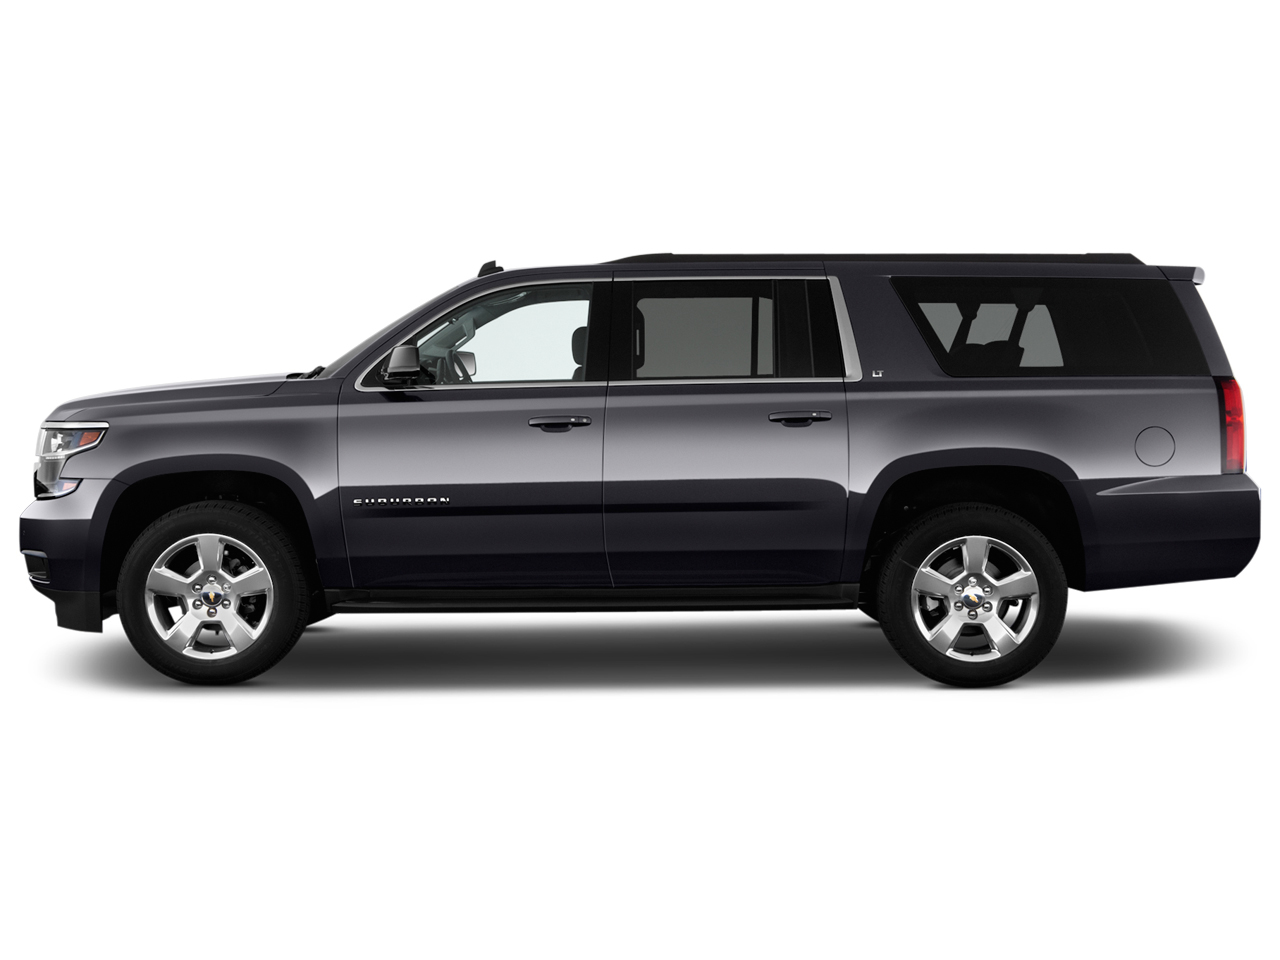 Image Result For Cadillac Escalade Luxury Suv New Review